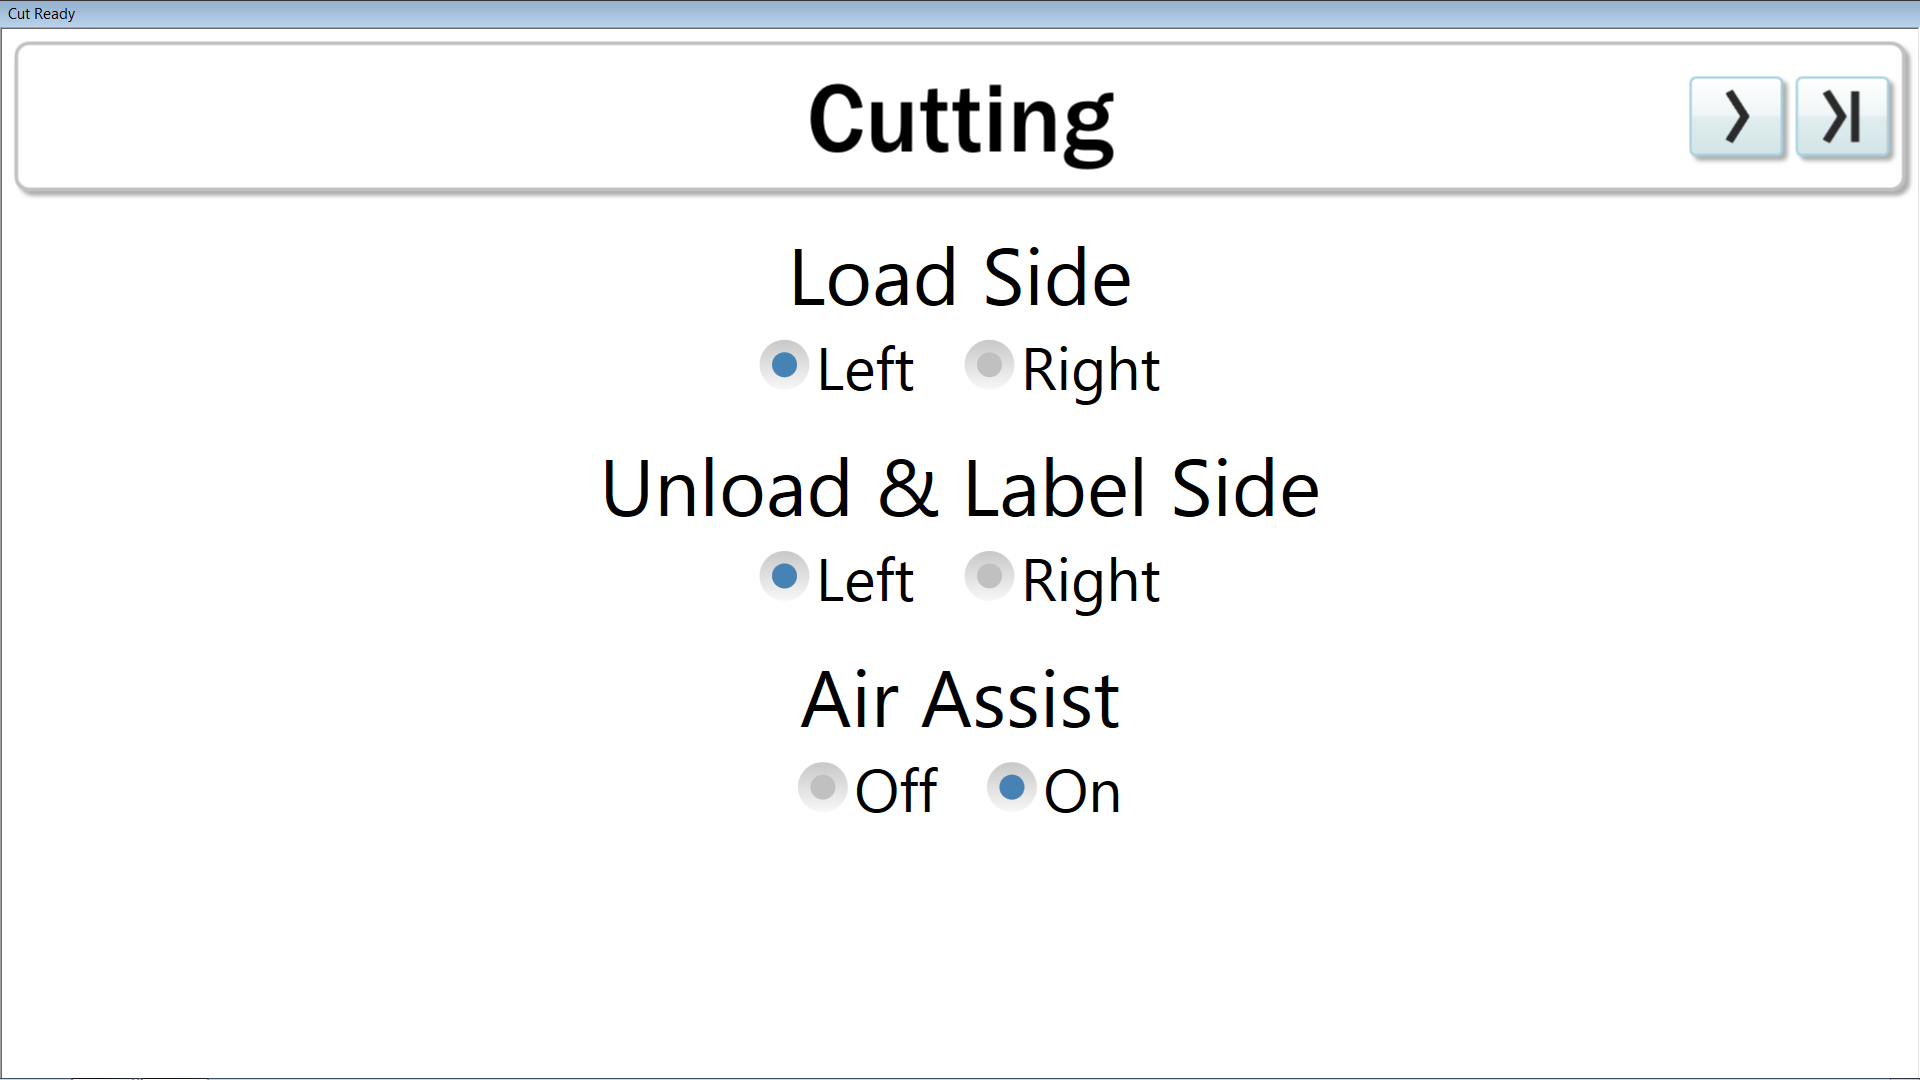 Thermwood Cut Center now adds the ability to turn air assist on or off manually